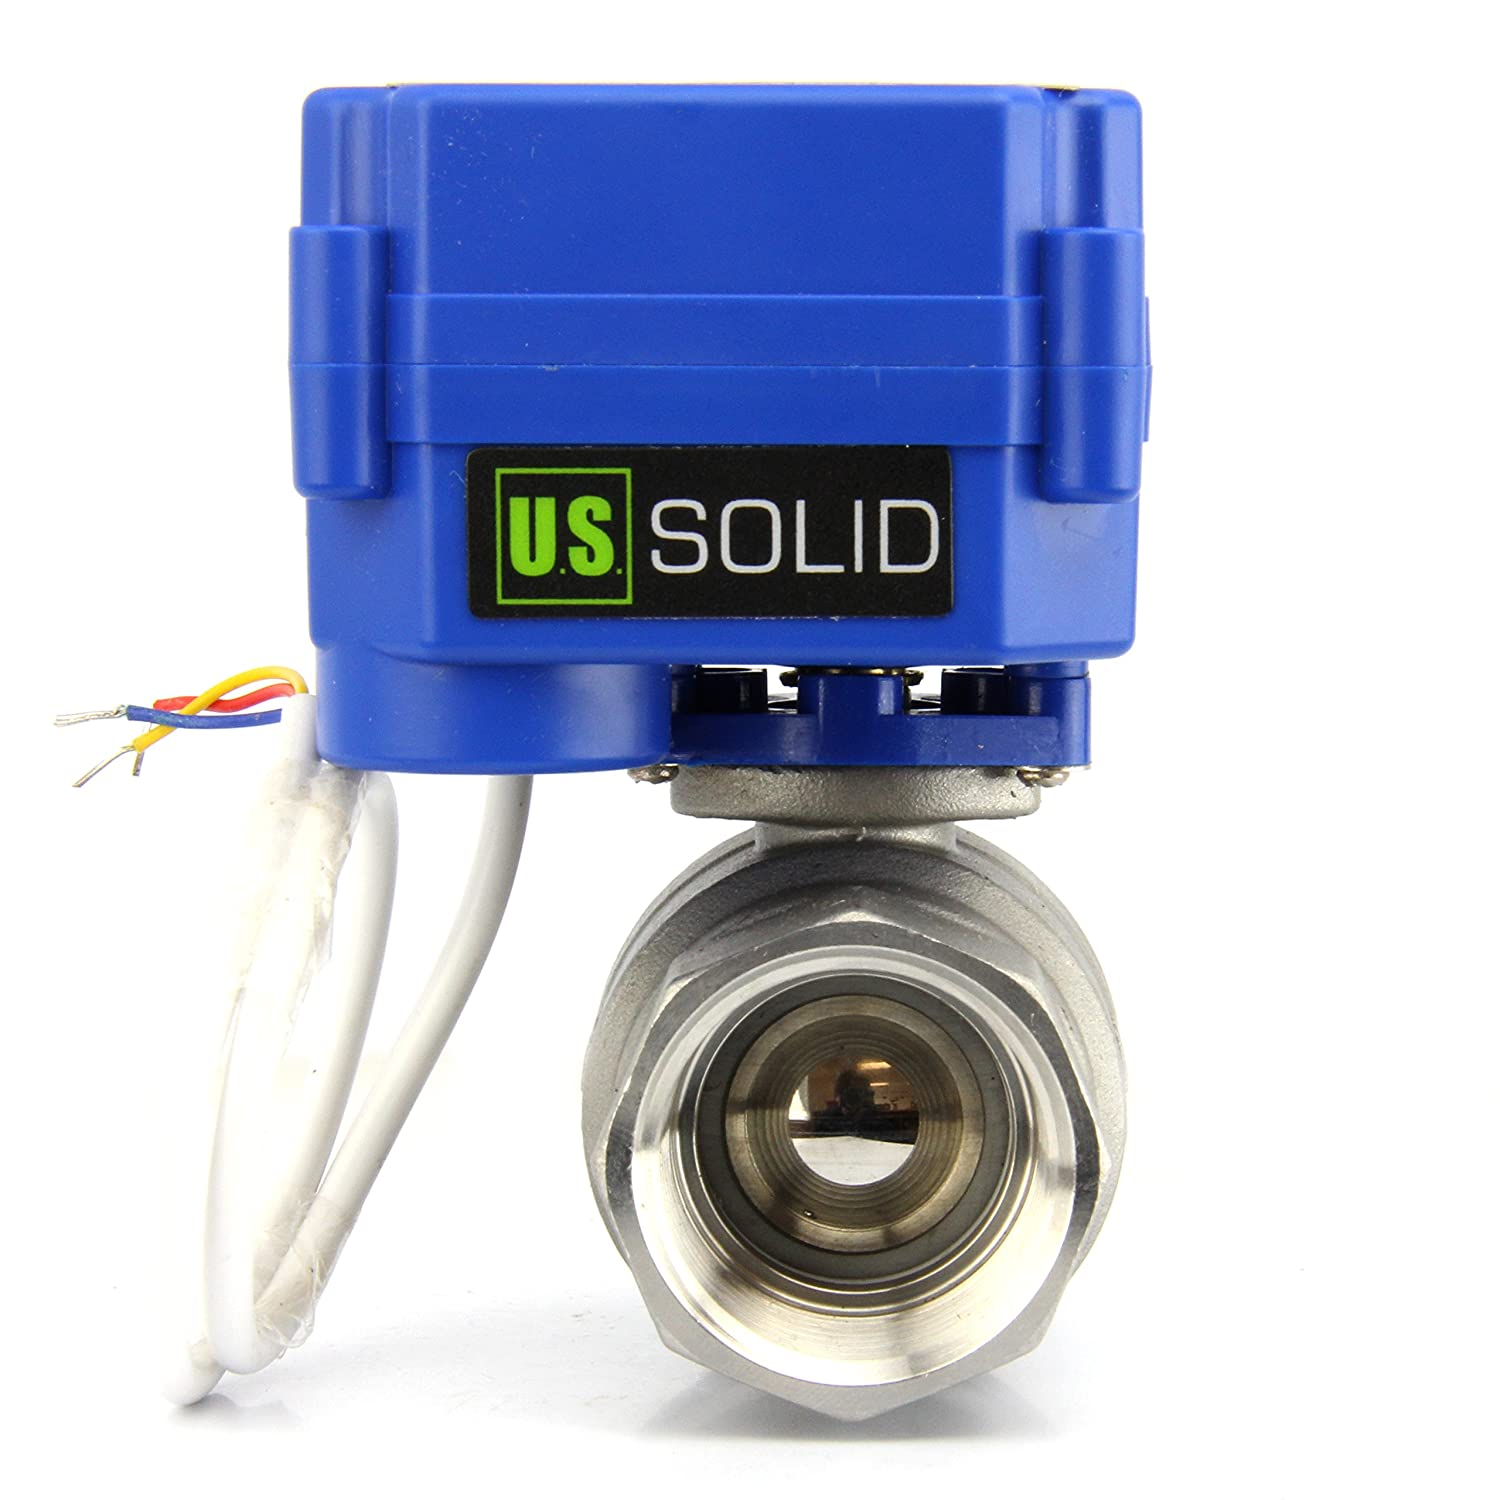 "Motorized Ball Valve- 1"" Stainless Steel Electrical Ball Valve with Full Port, 9-24V AC/DC and 3 Wire Setup by U.S. Solid"